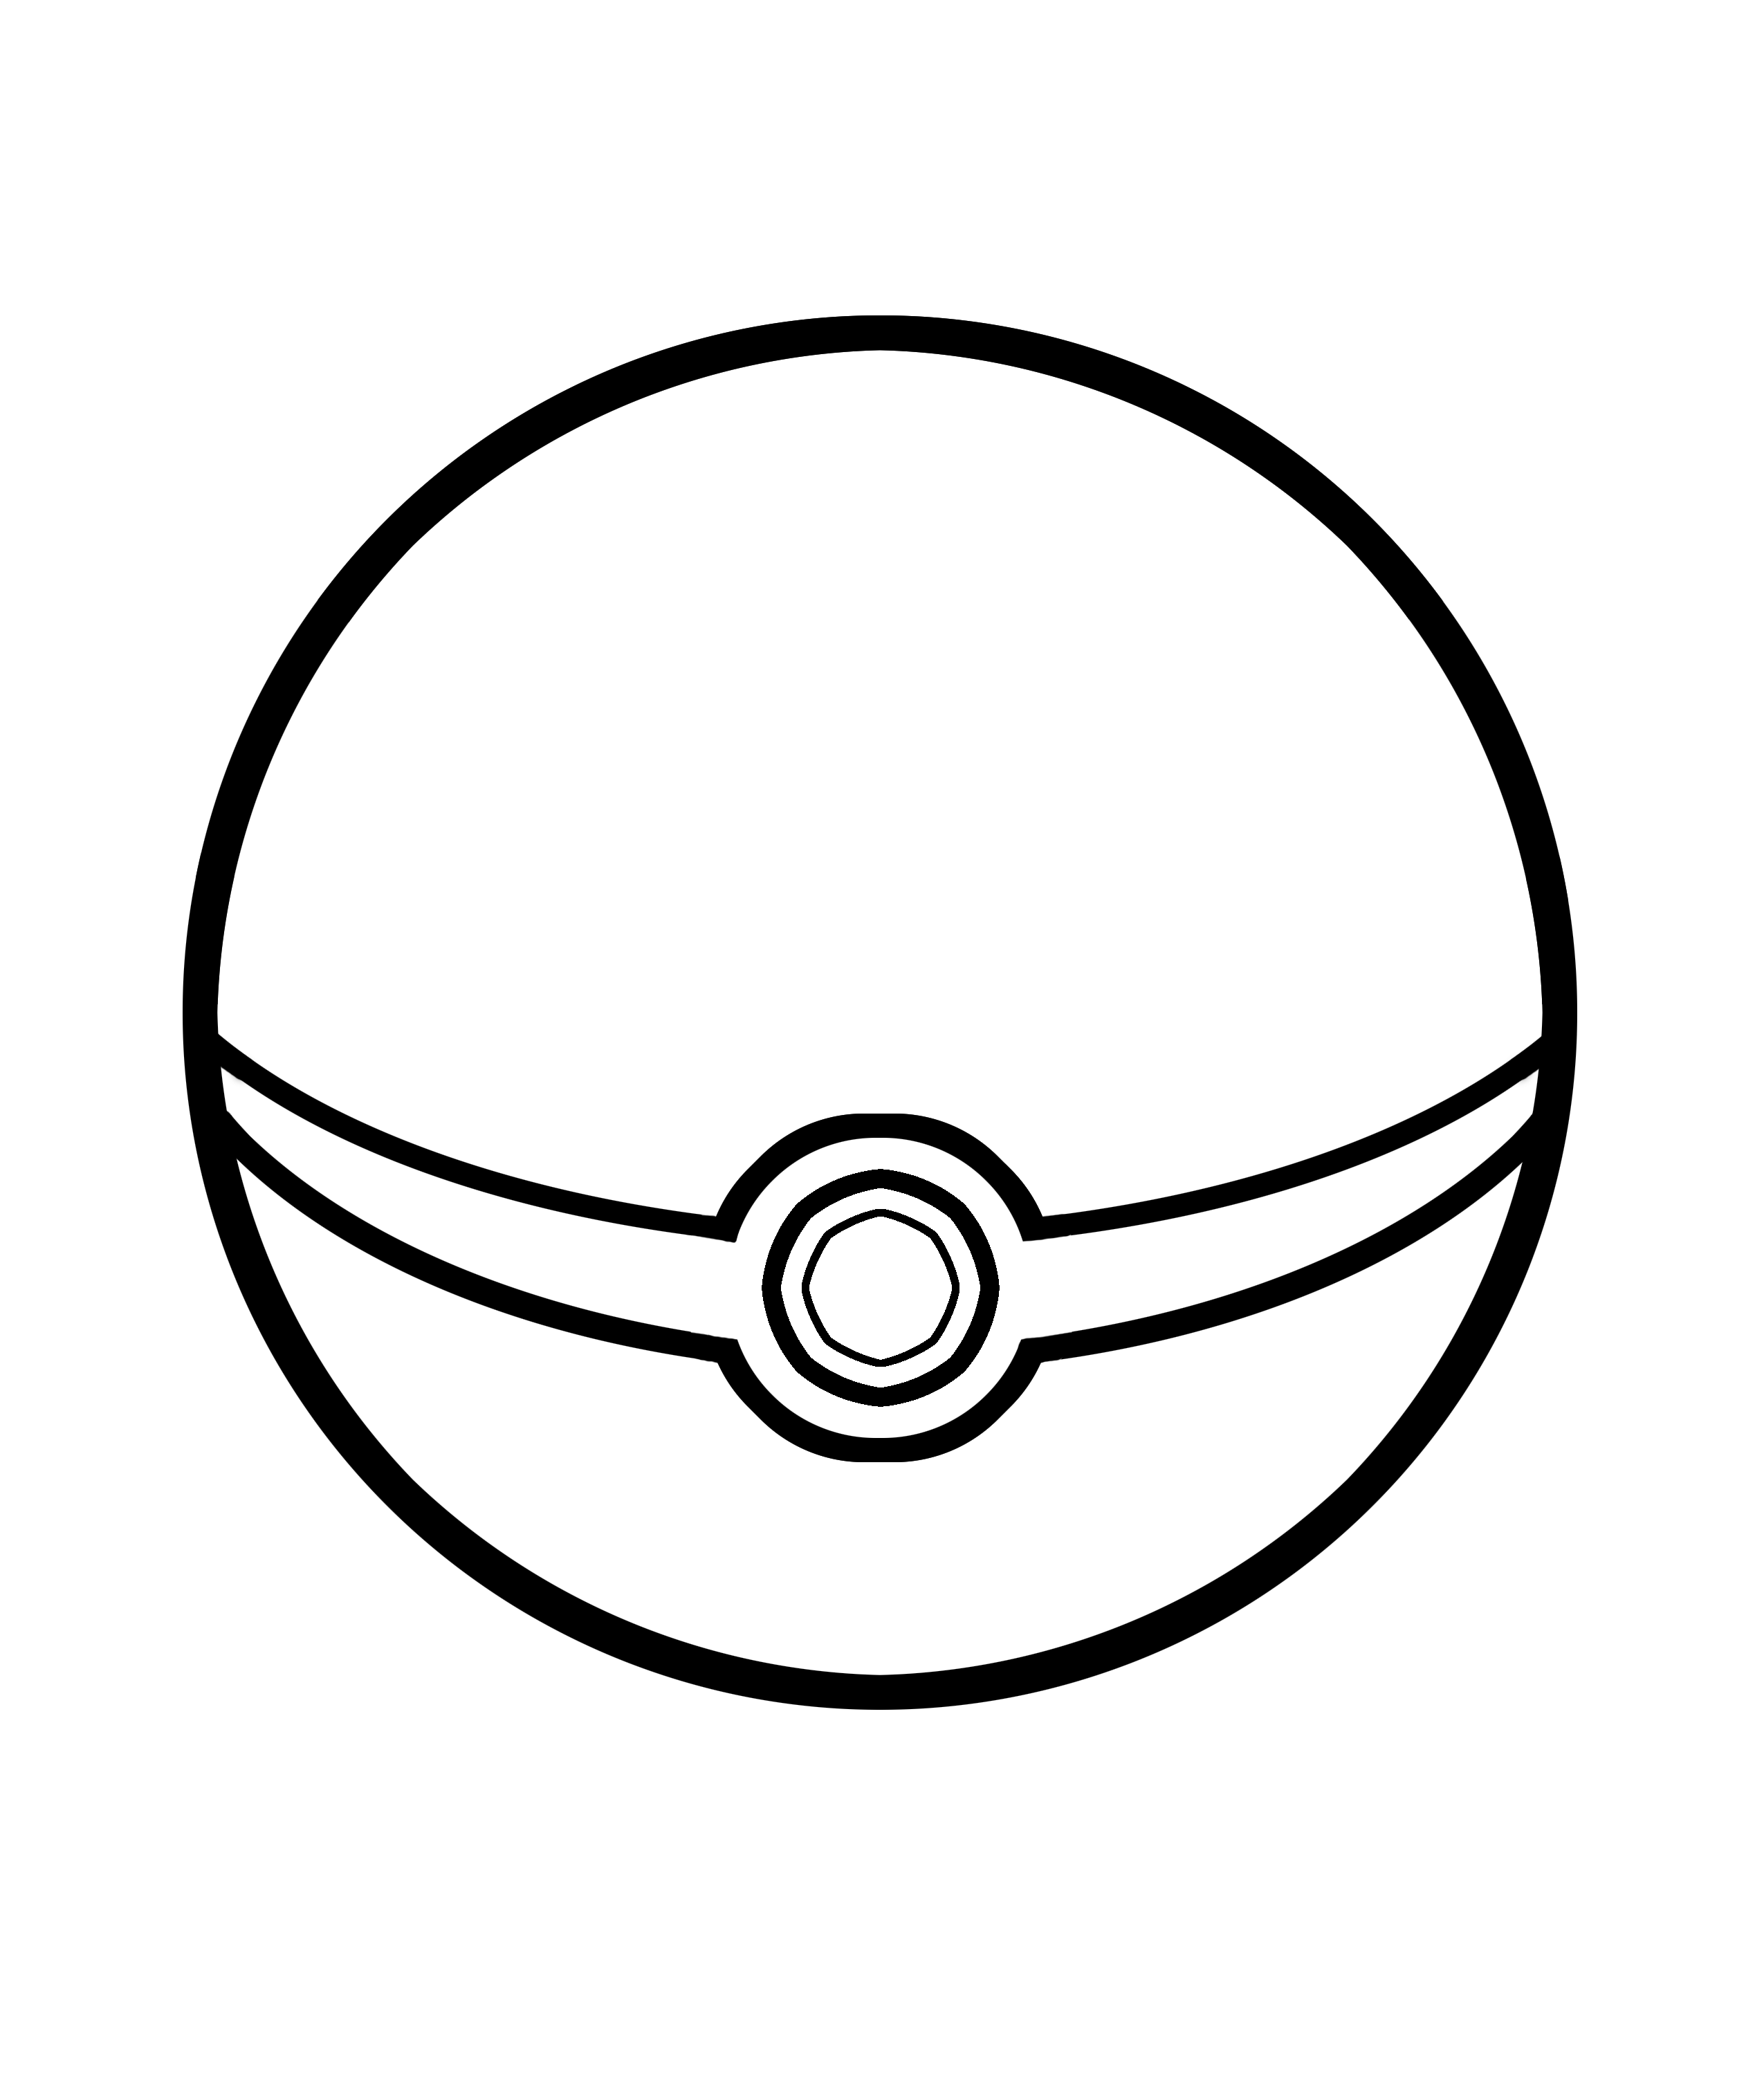 Http Www Daycoloring Com Postpic 2012 06 Pokeball Pokemon Ball Coloring Page 350971 Png Shape Coloring Pages Coloring Pages Star Coloring Pages